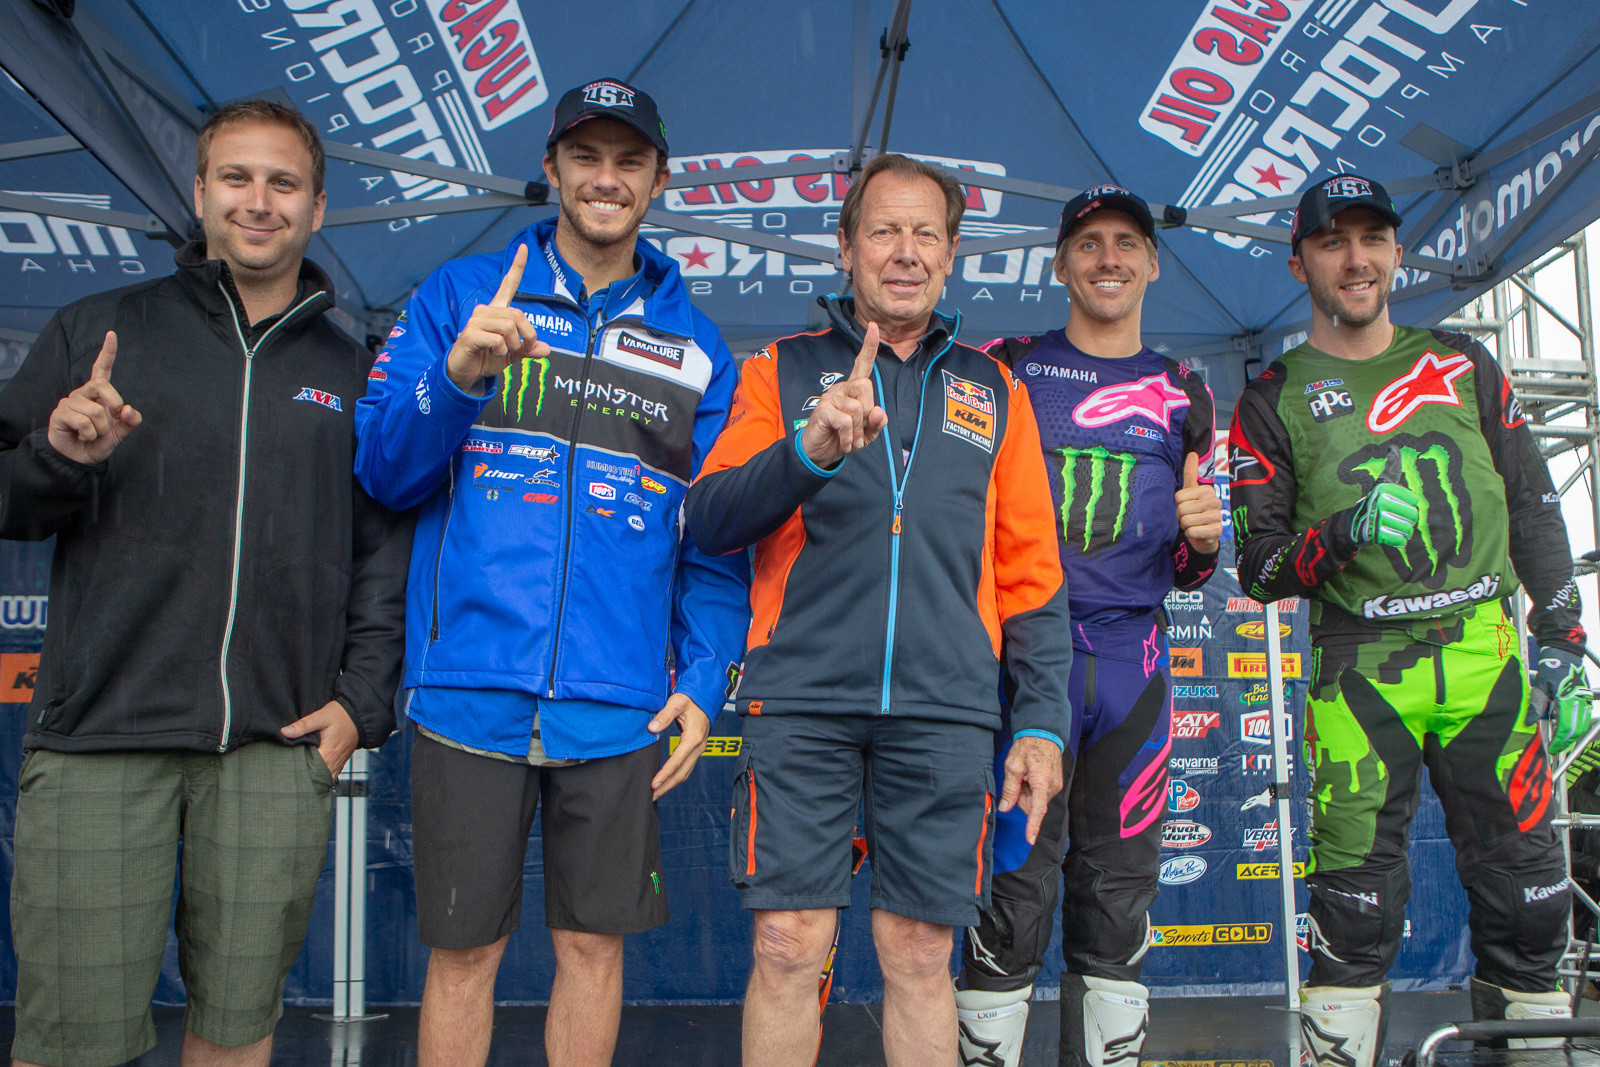 From left to right, the AMA's Michael Pelletier, Aaron Plessinger, Roger DeCoster, Justin Barcia, and Eli Tomac.